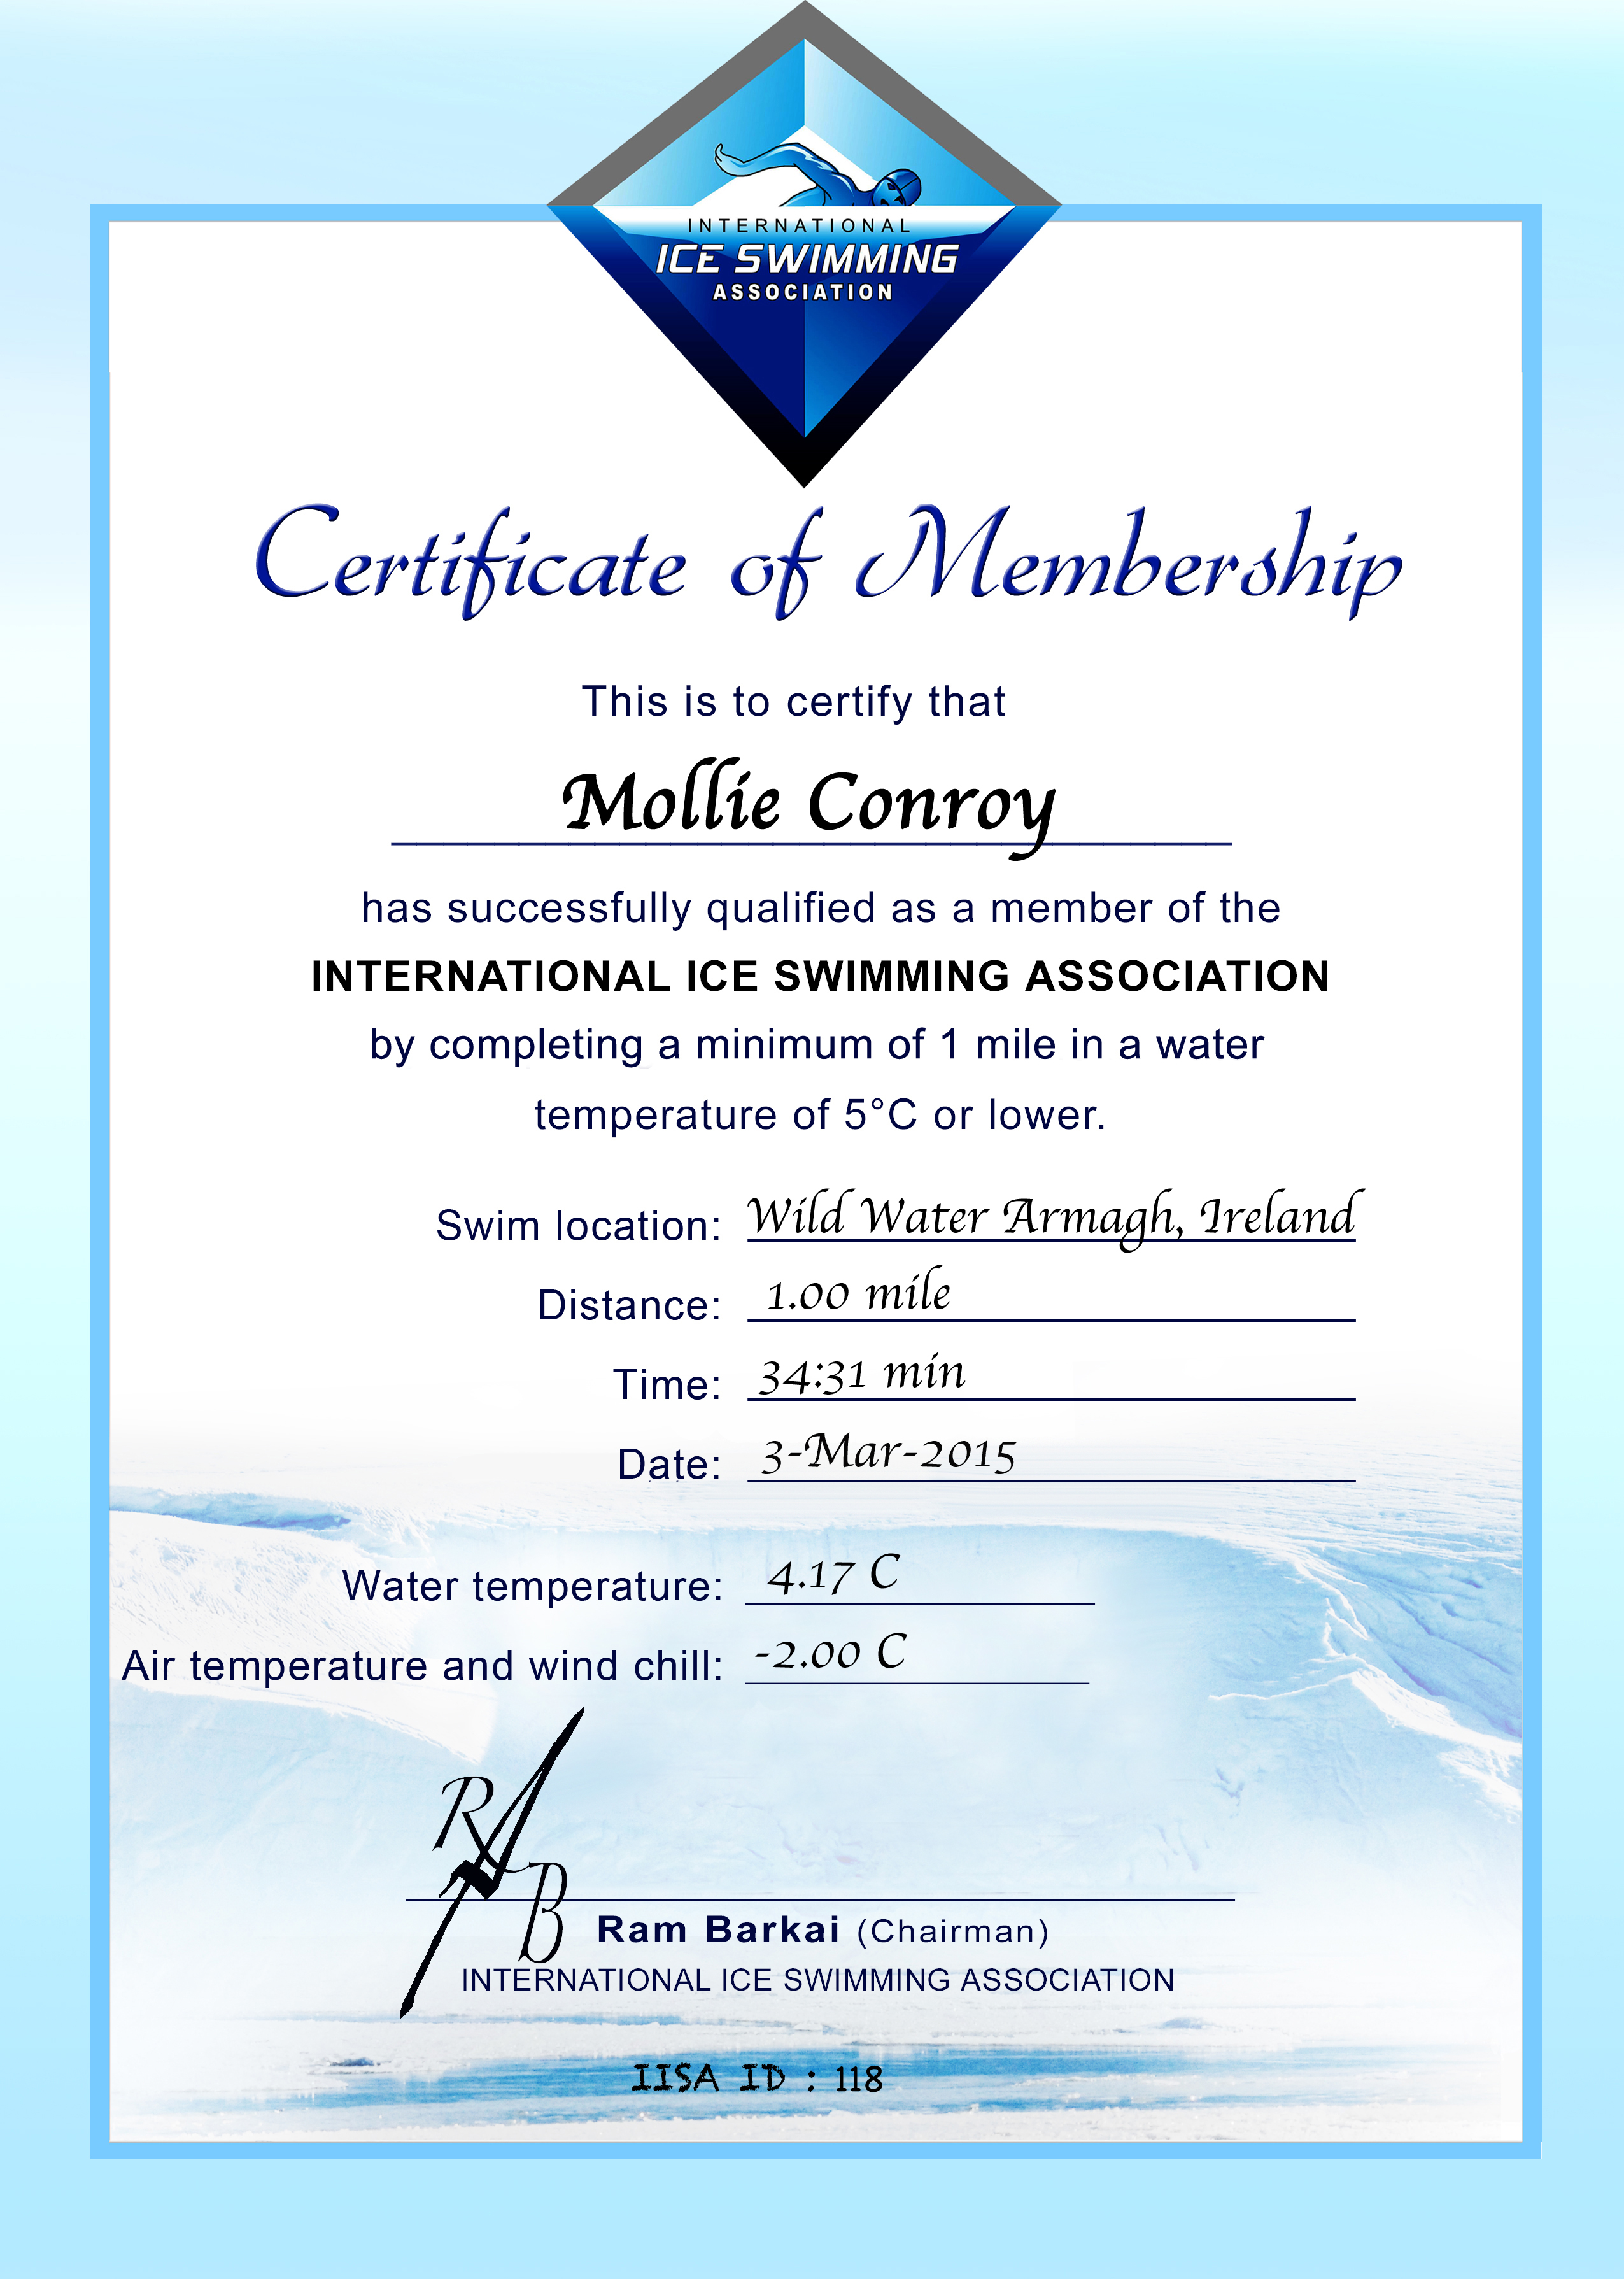 Ice Mile Certificate - Mollie Conroy